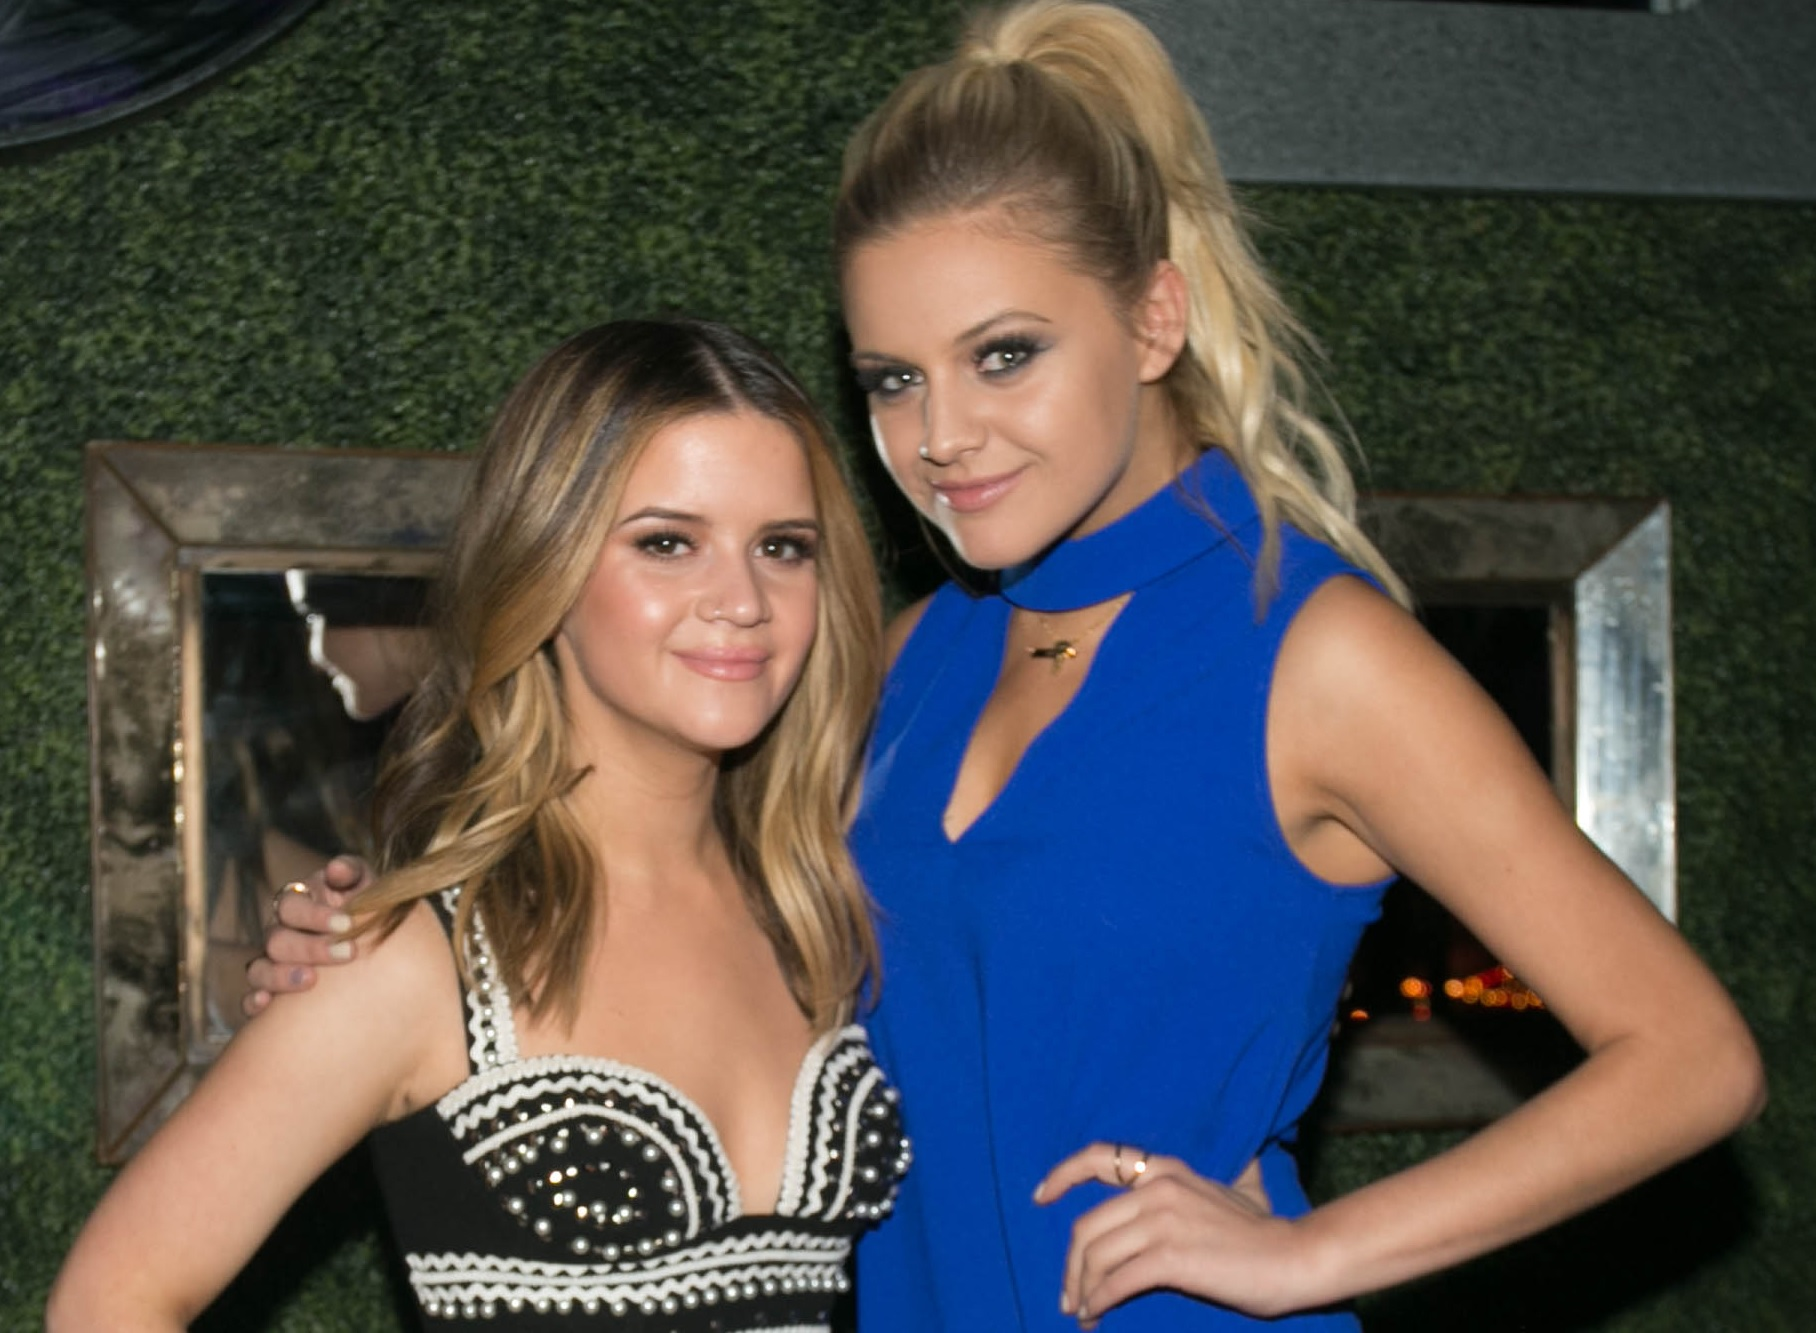 Kelsea Ballerini Reveals She and Maren Morris Exchanged Texts After GRAMMY News